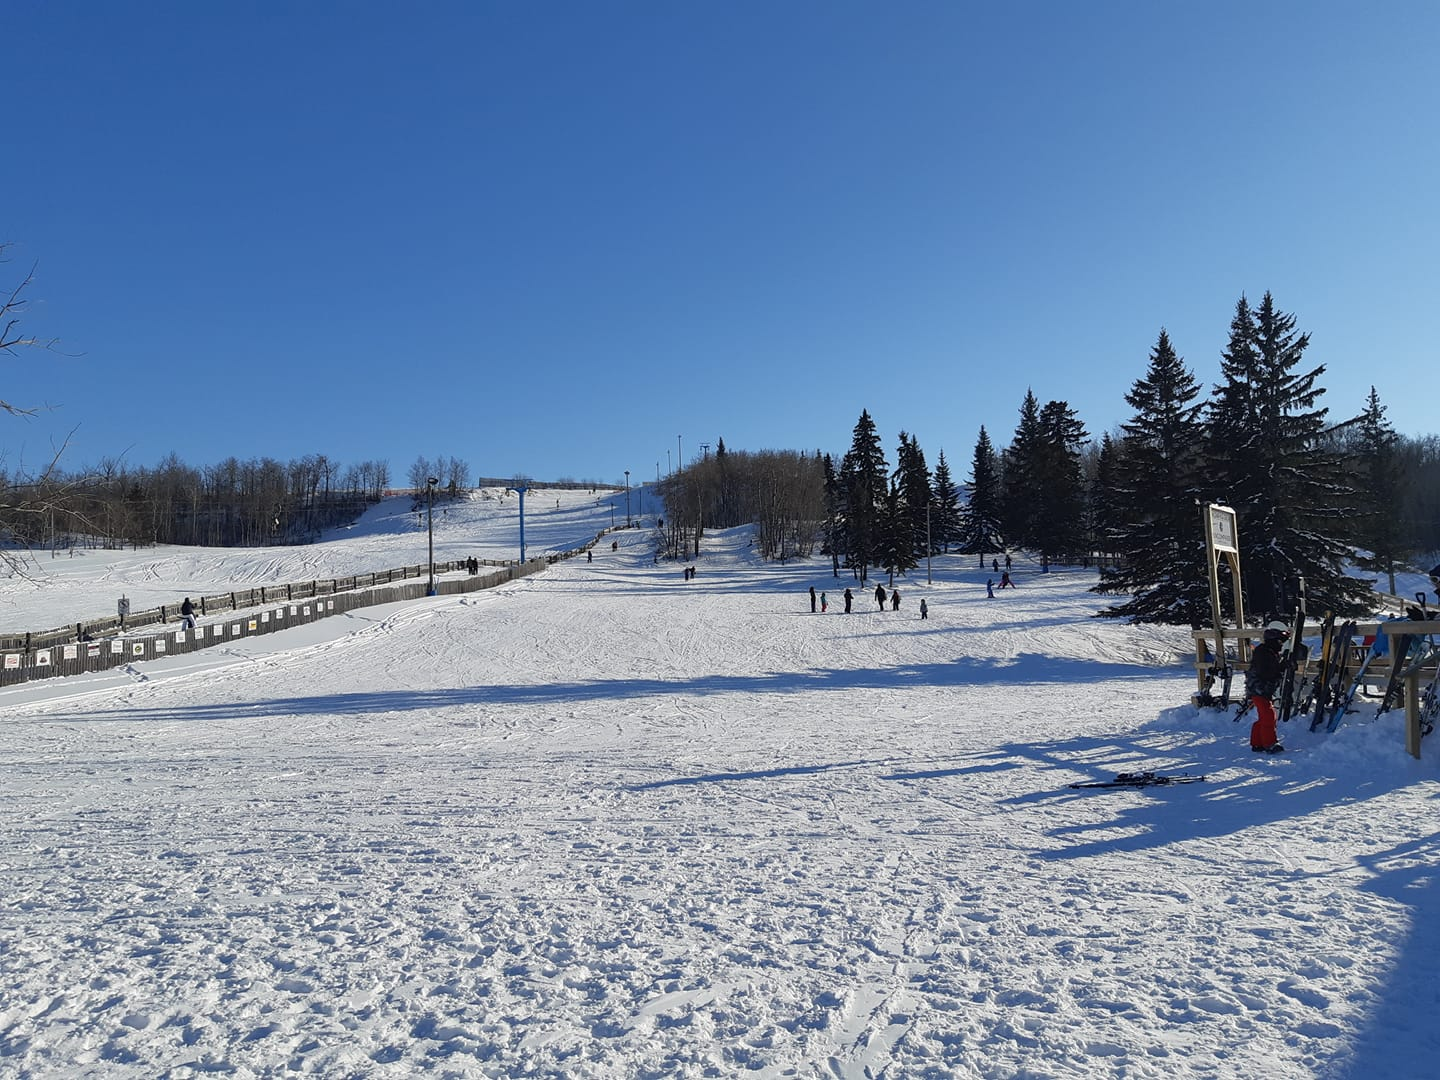 Image of Gwynne Valley Ski Area in Canada from the bottom of the slopes on a bluebird day